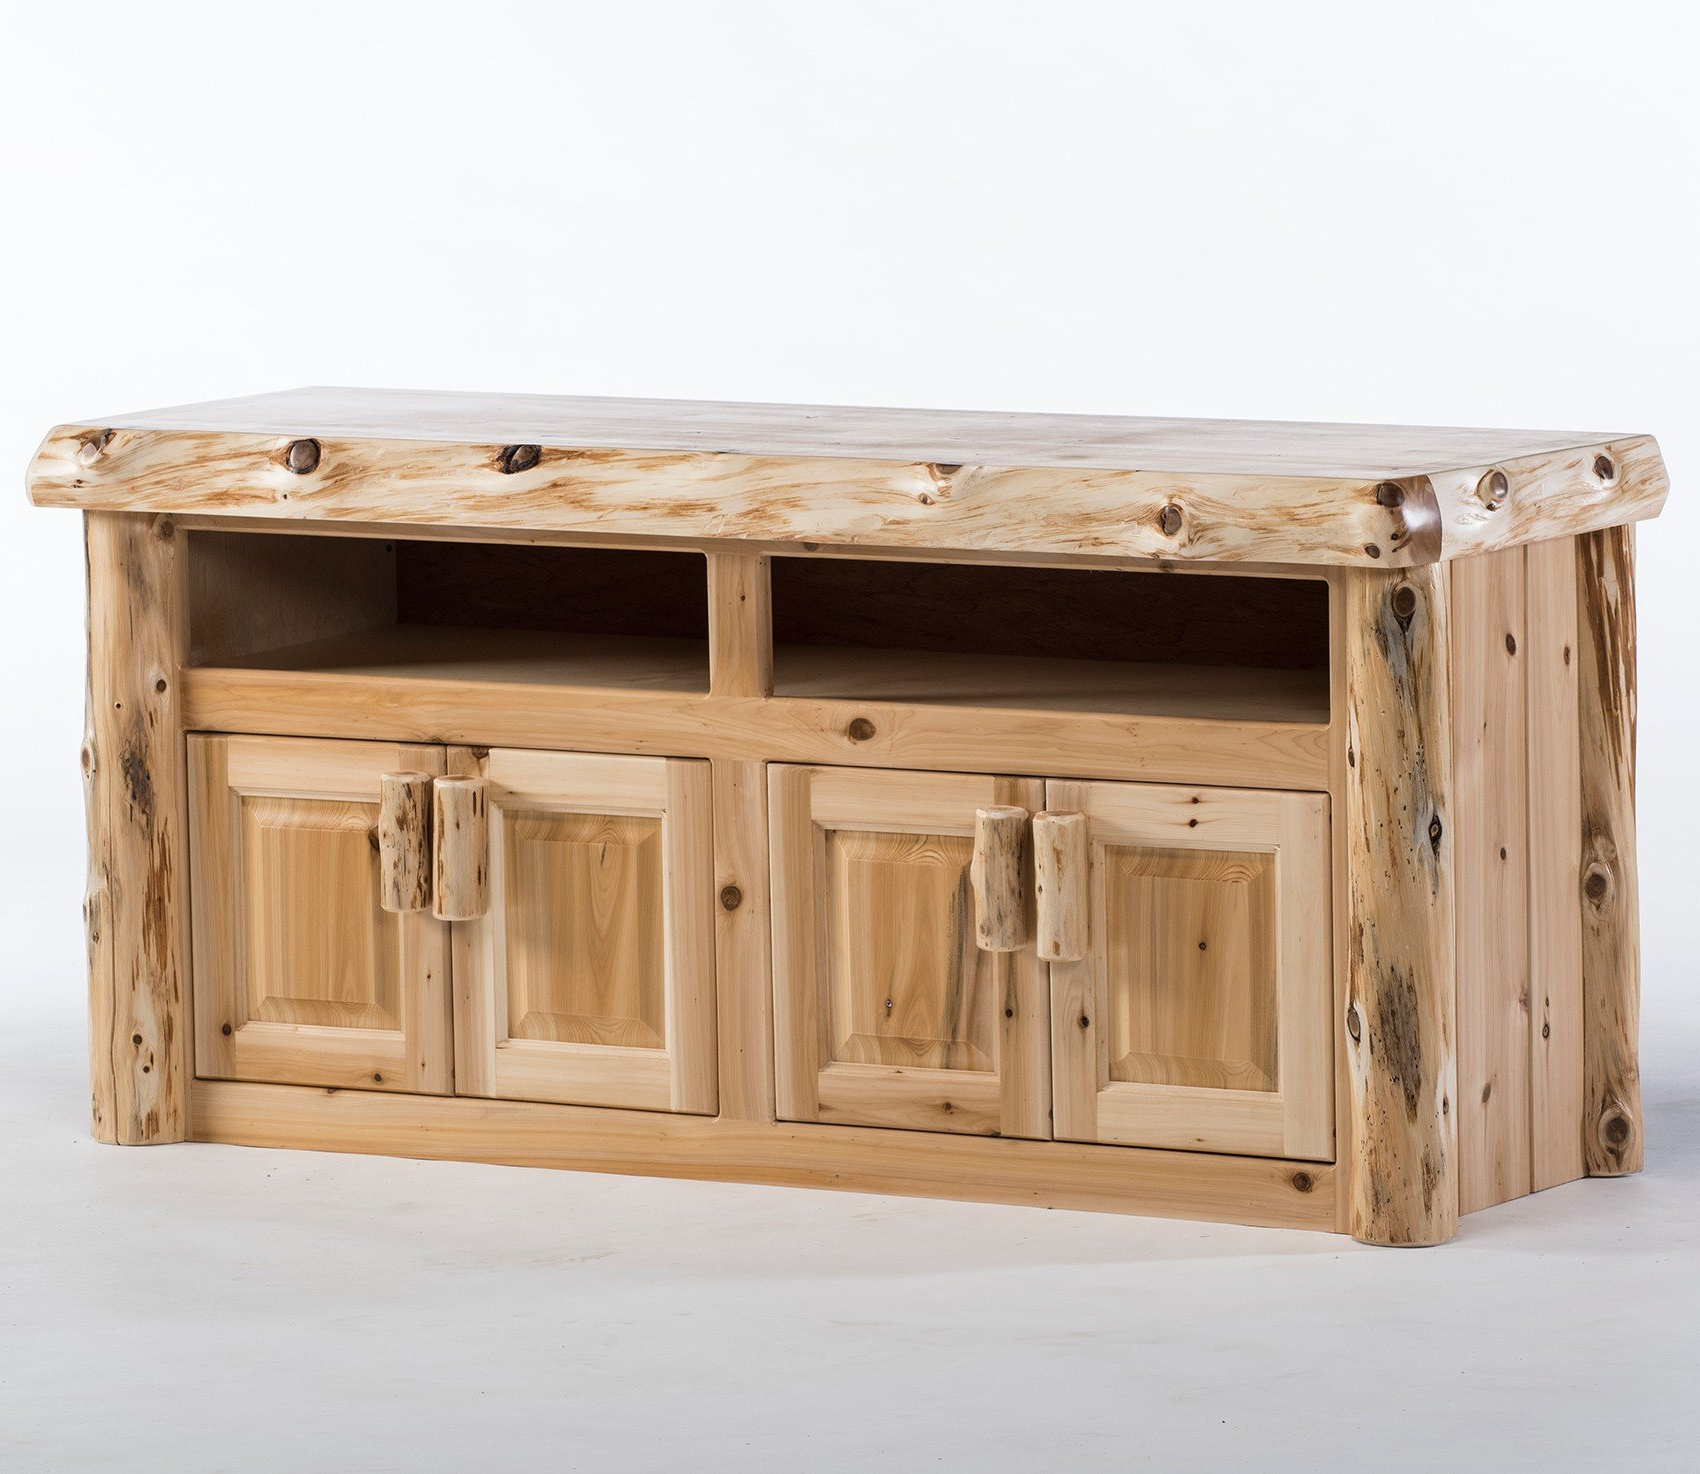 Well Liked Reclaimed Wood Tv Stands & Rustic Tv Stands: Log Tv Stand & Rustic Intended For Rustic Tv Stands For Sale (Gallery 16 of 20)